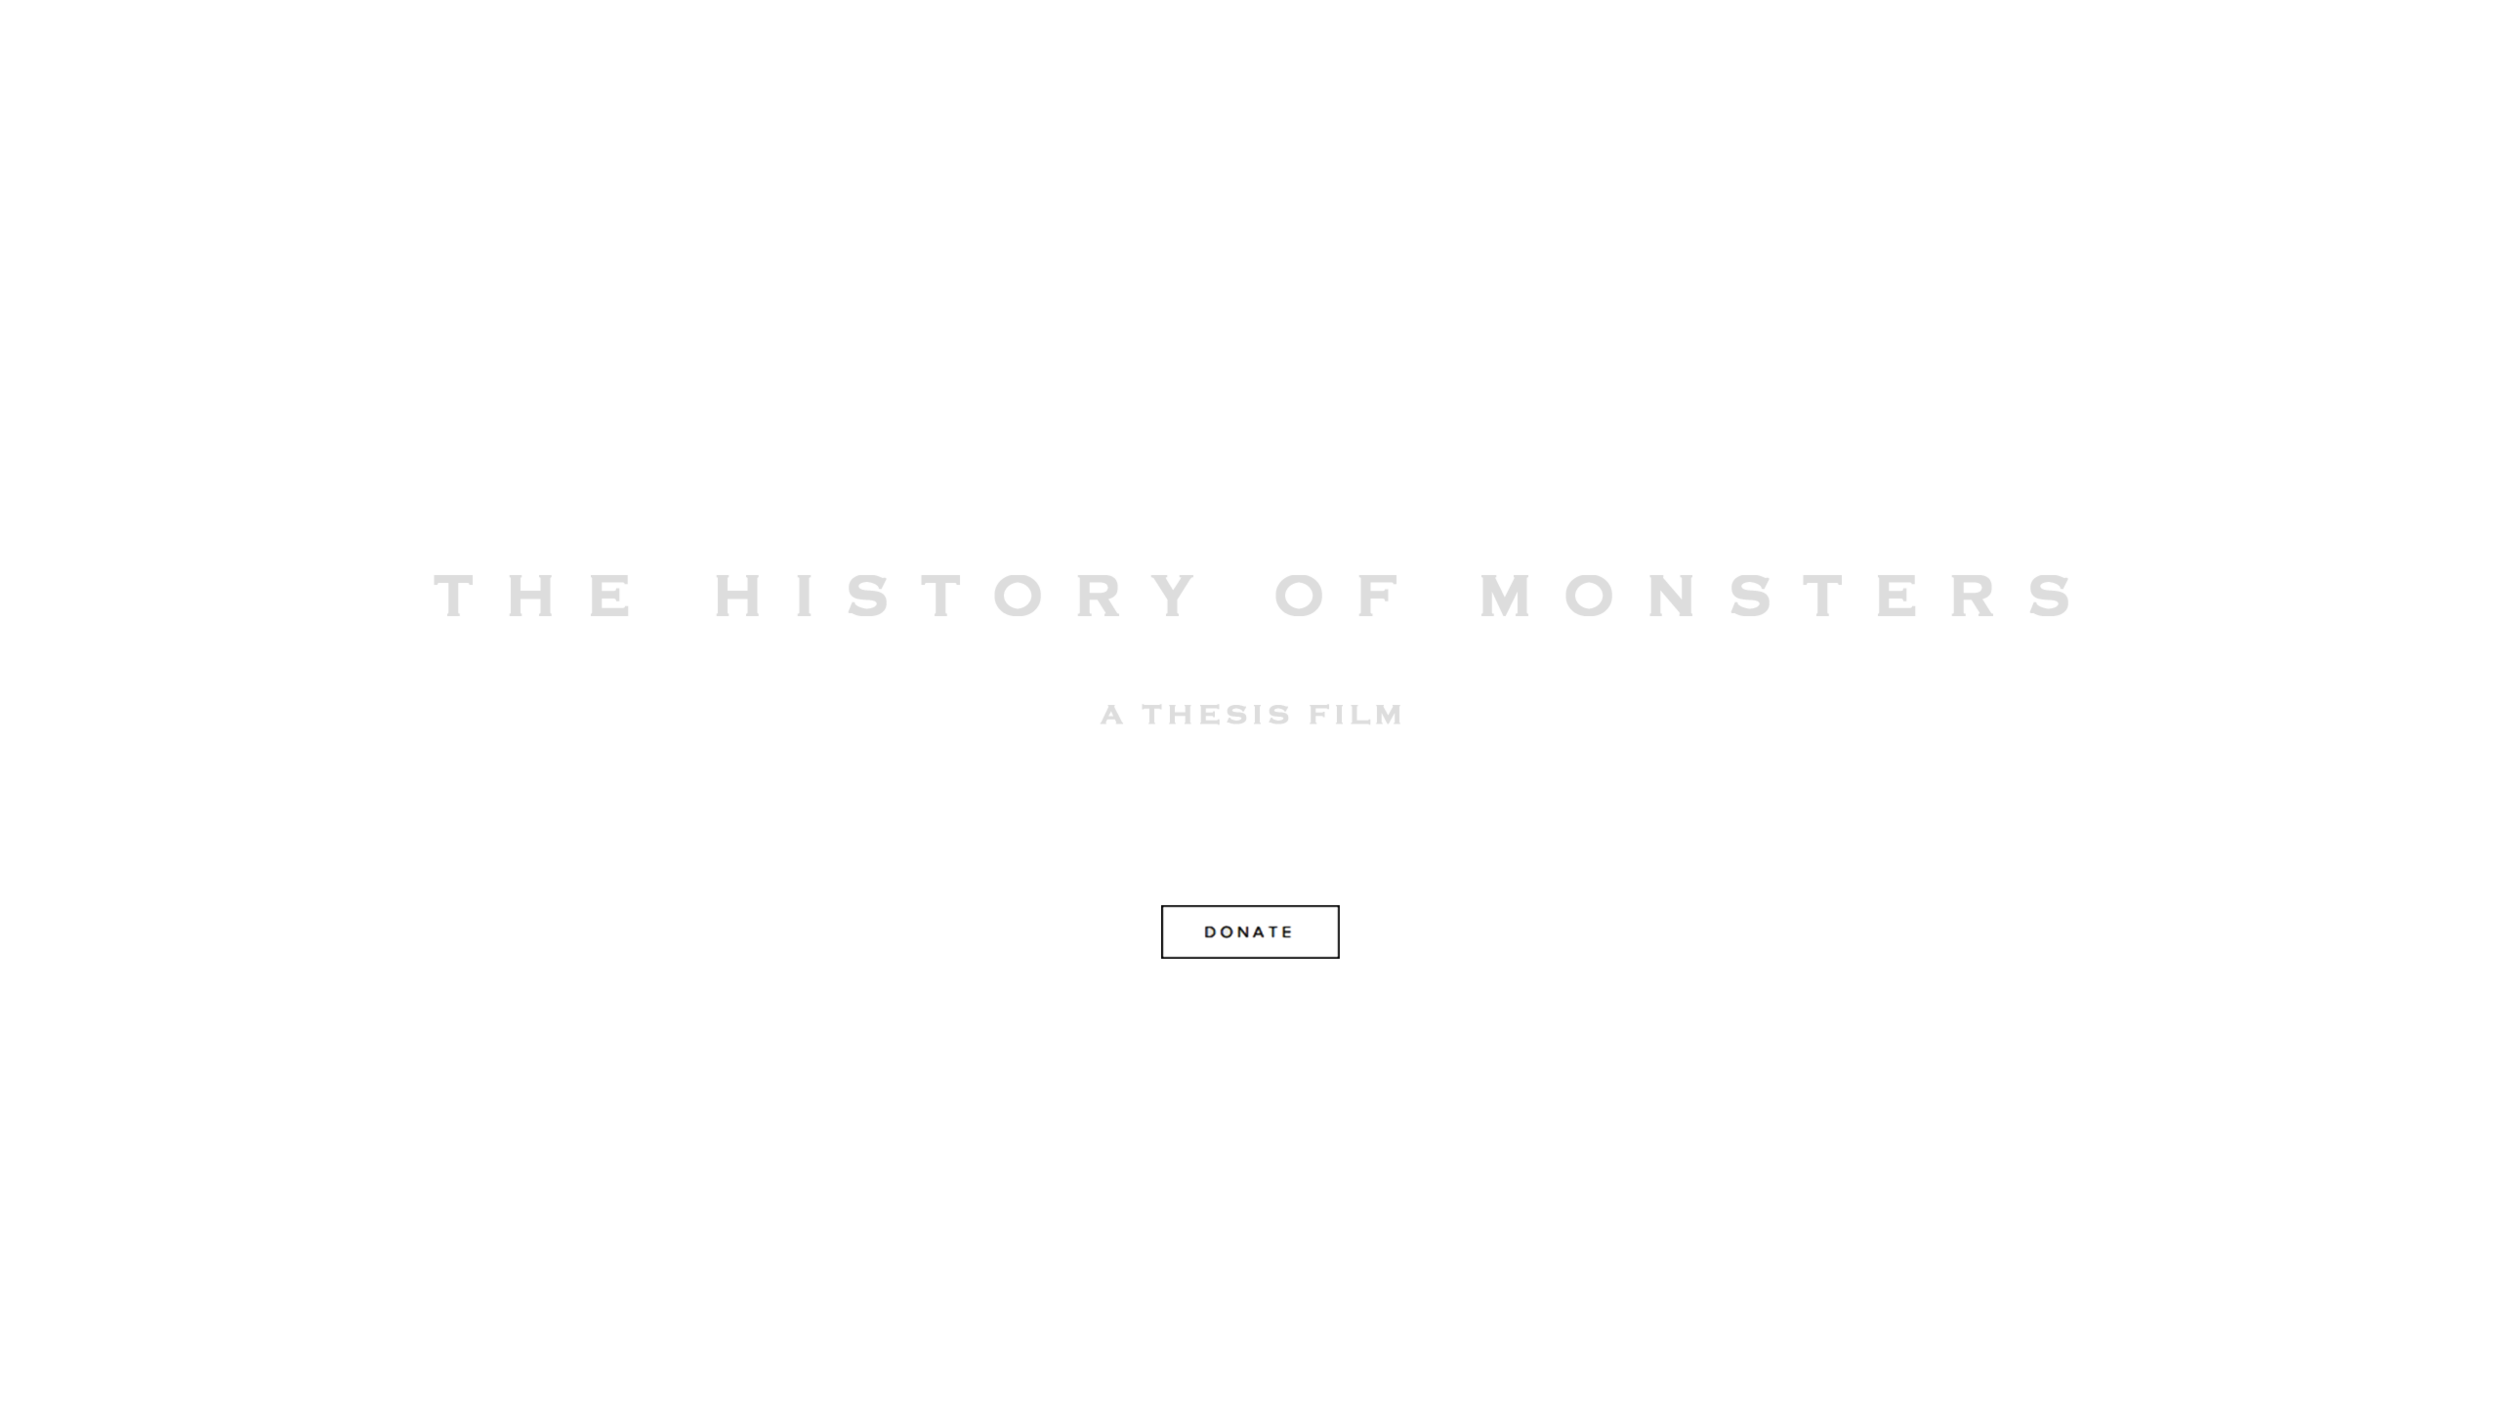 thehistoryofmonsters-banner3.png